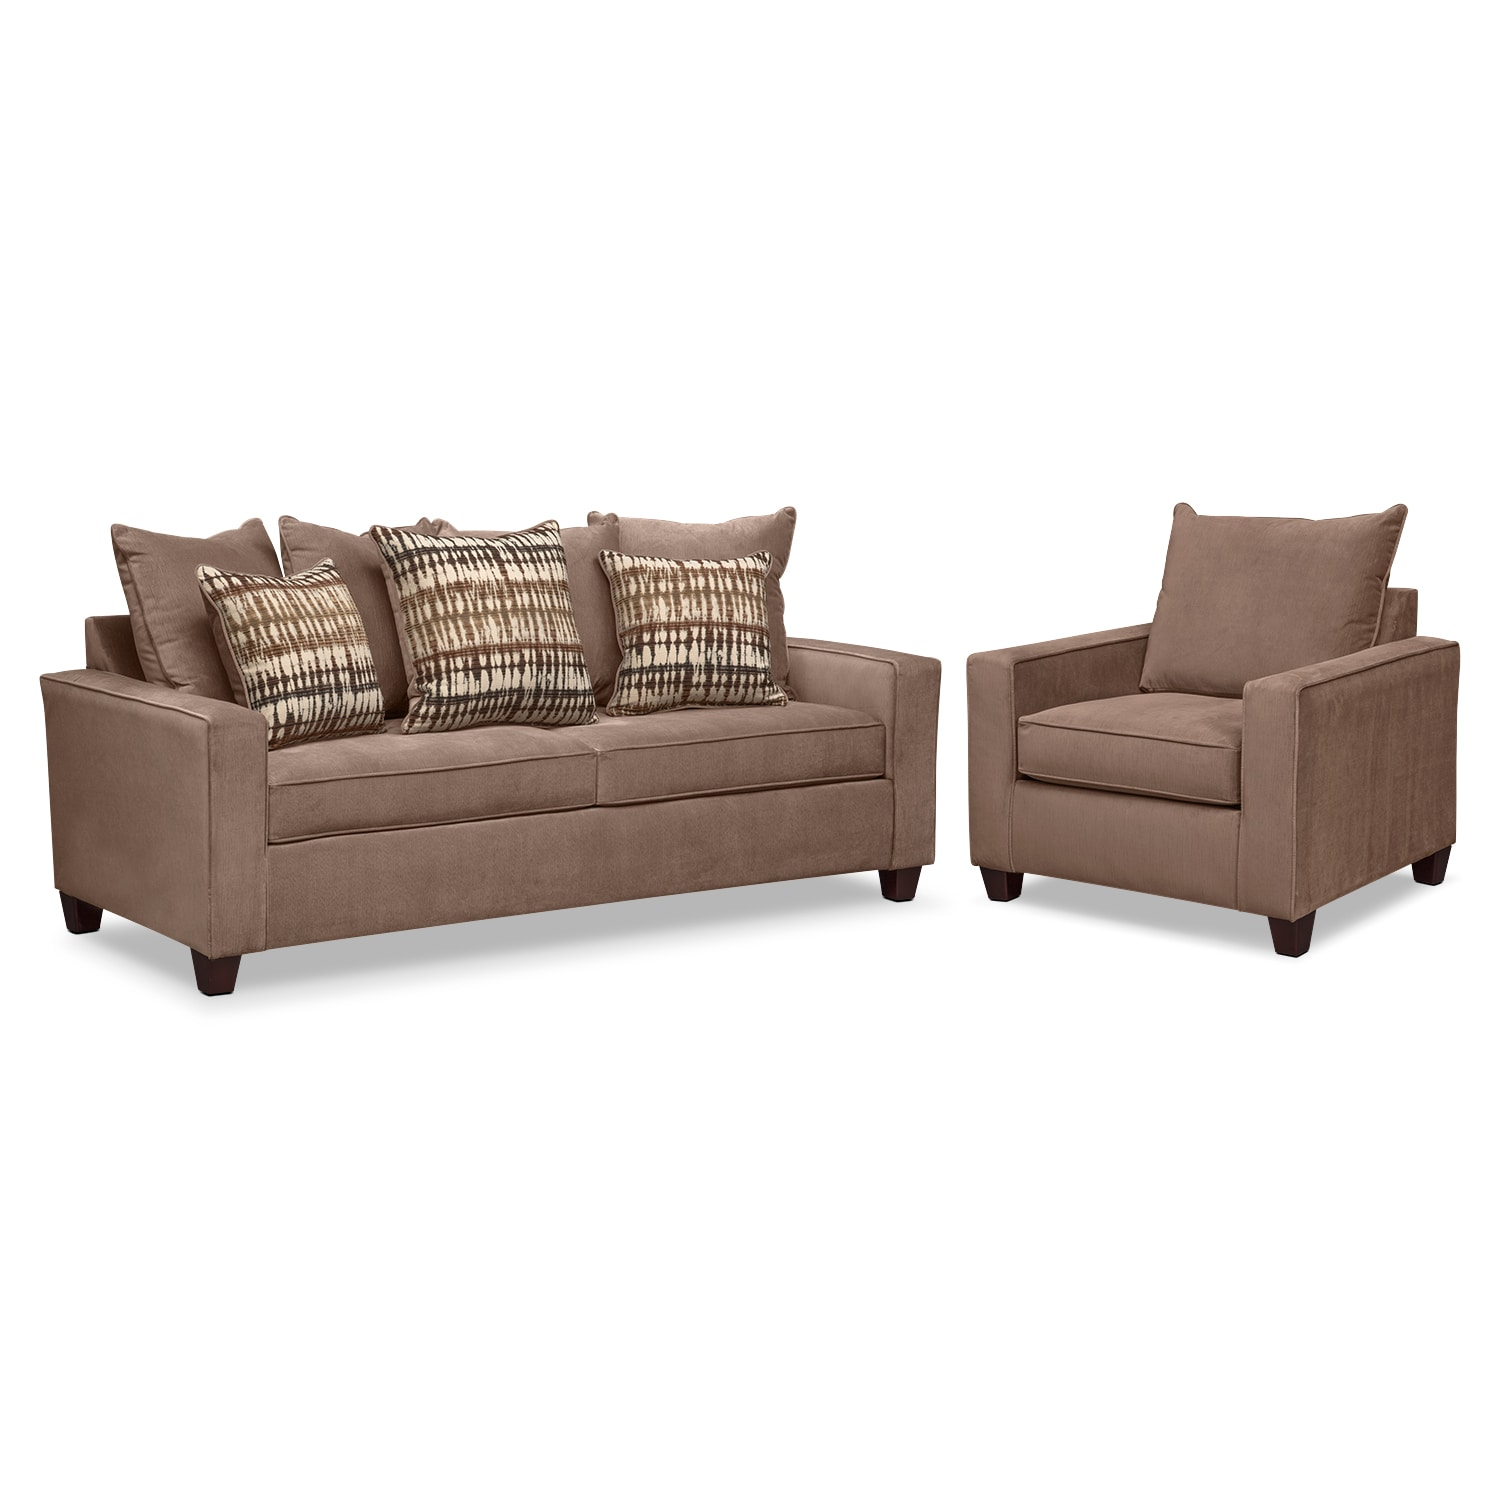 Living Room Furniture - Bryden Queen Memory Foam Sleeper Sofa and Chair Set - Chocolate